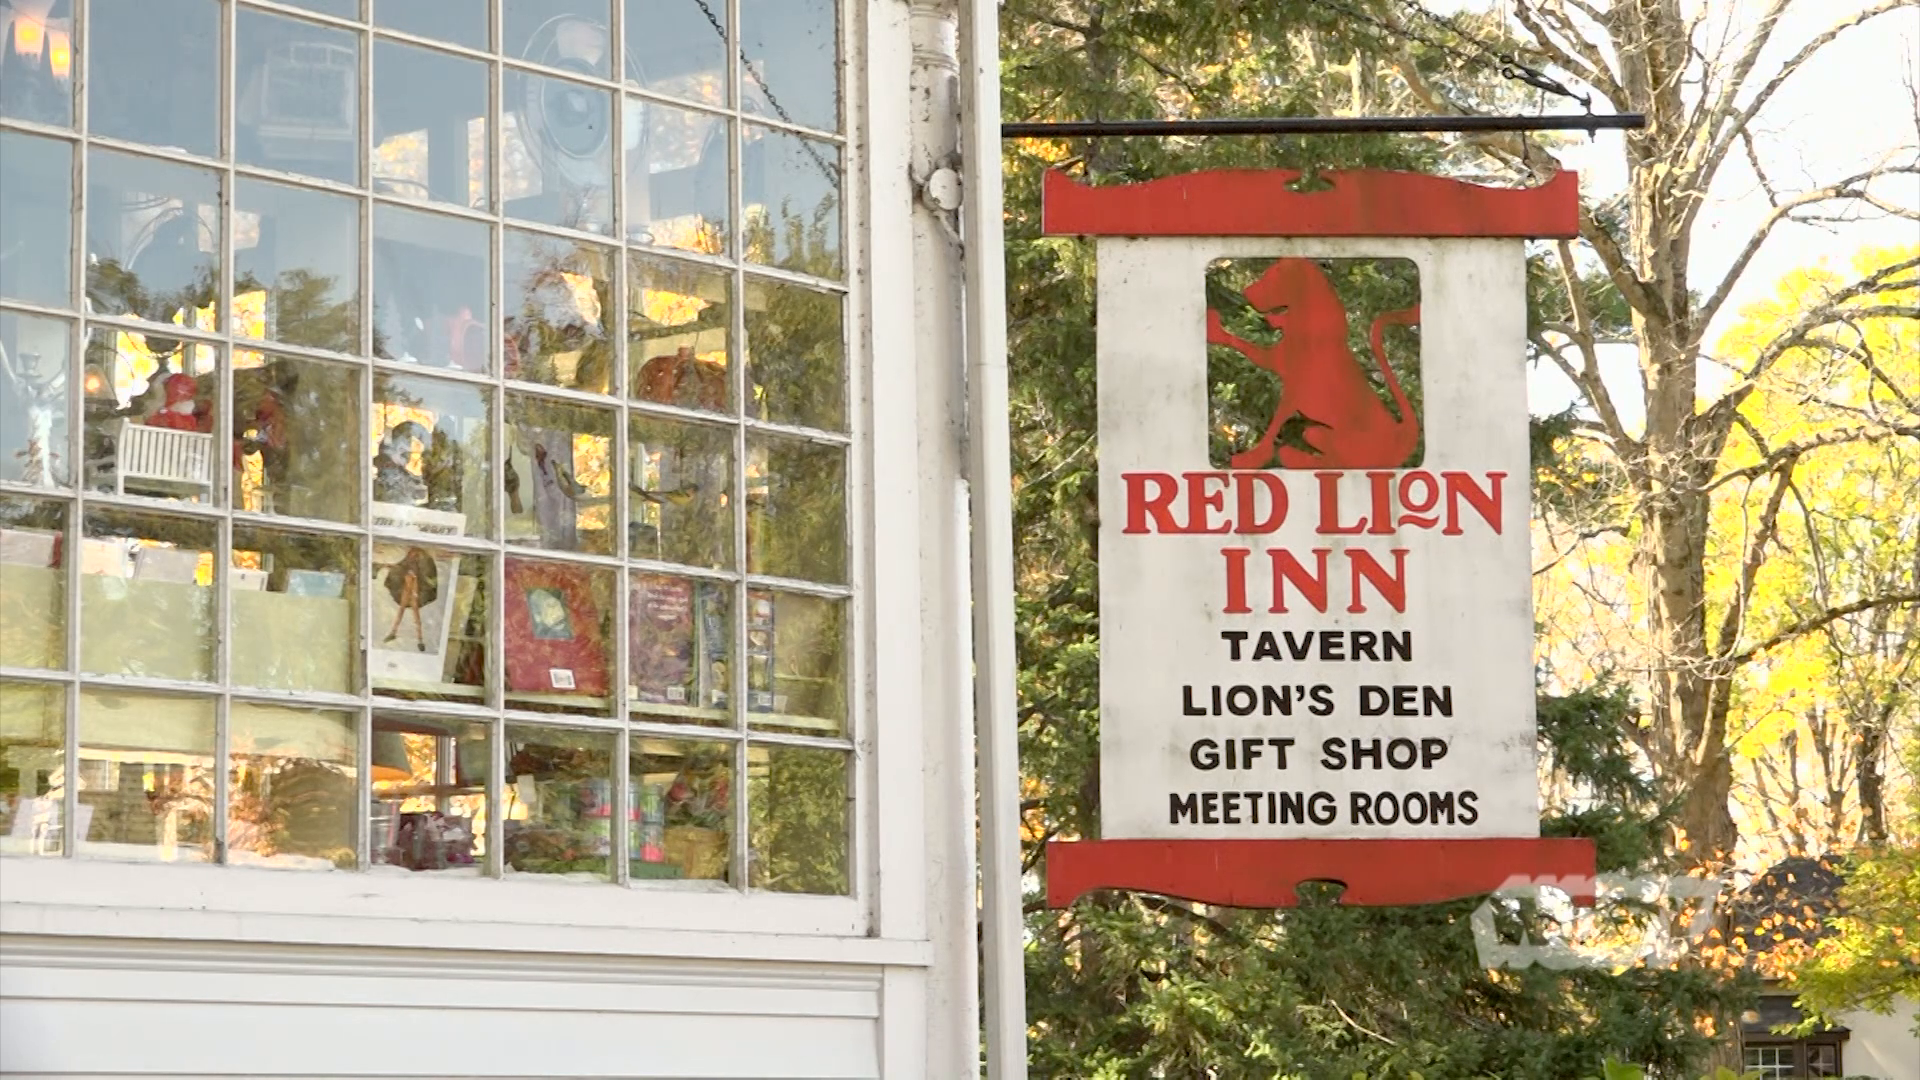 The Stockbridge, Mass.-based, women-led Main Street Hospitality Group runs several local, historic hotels, including the iconic Red Lion Inn.